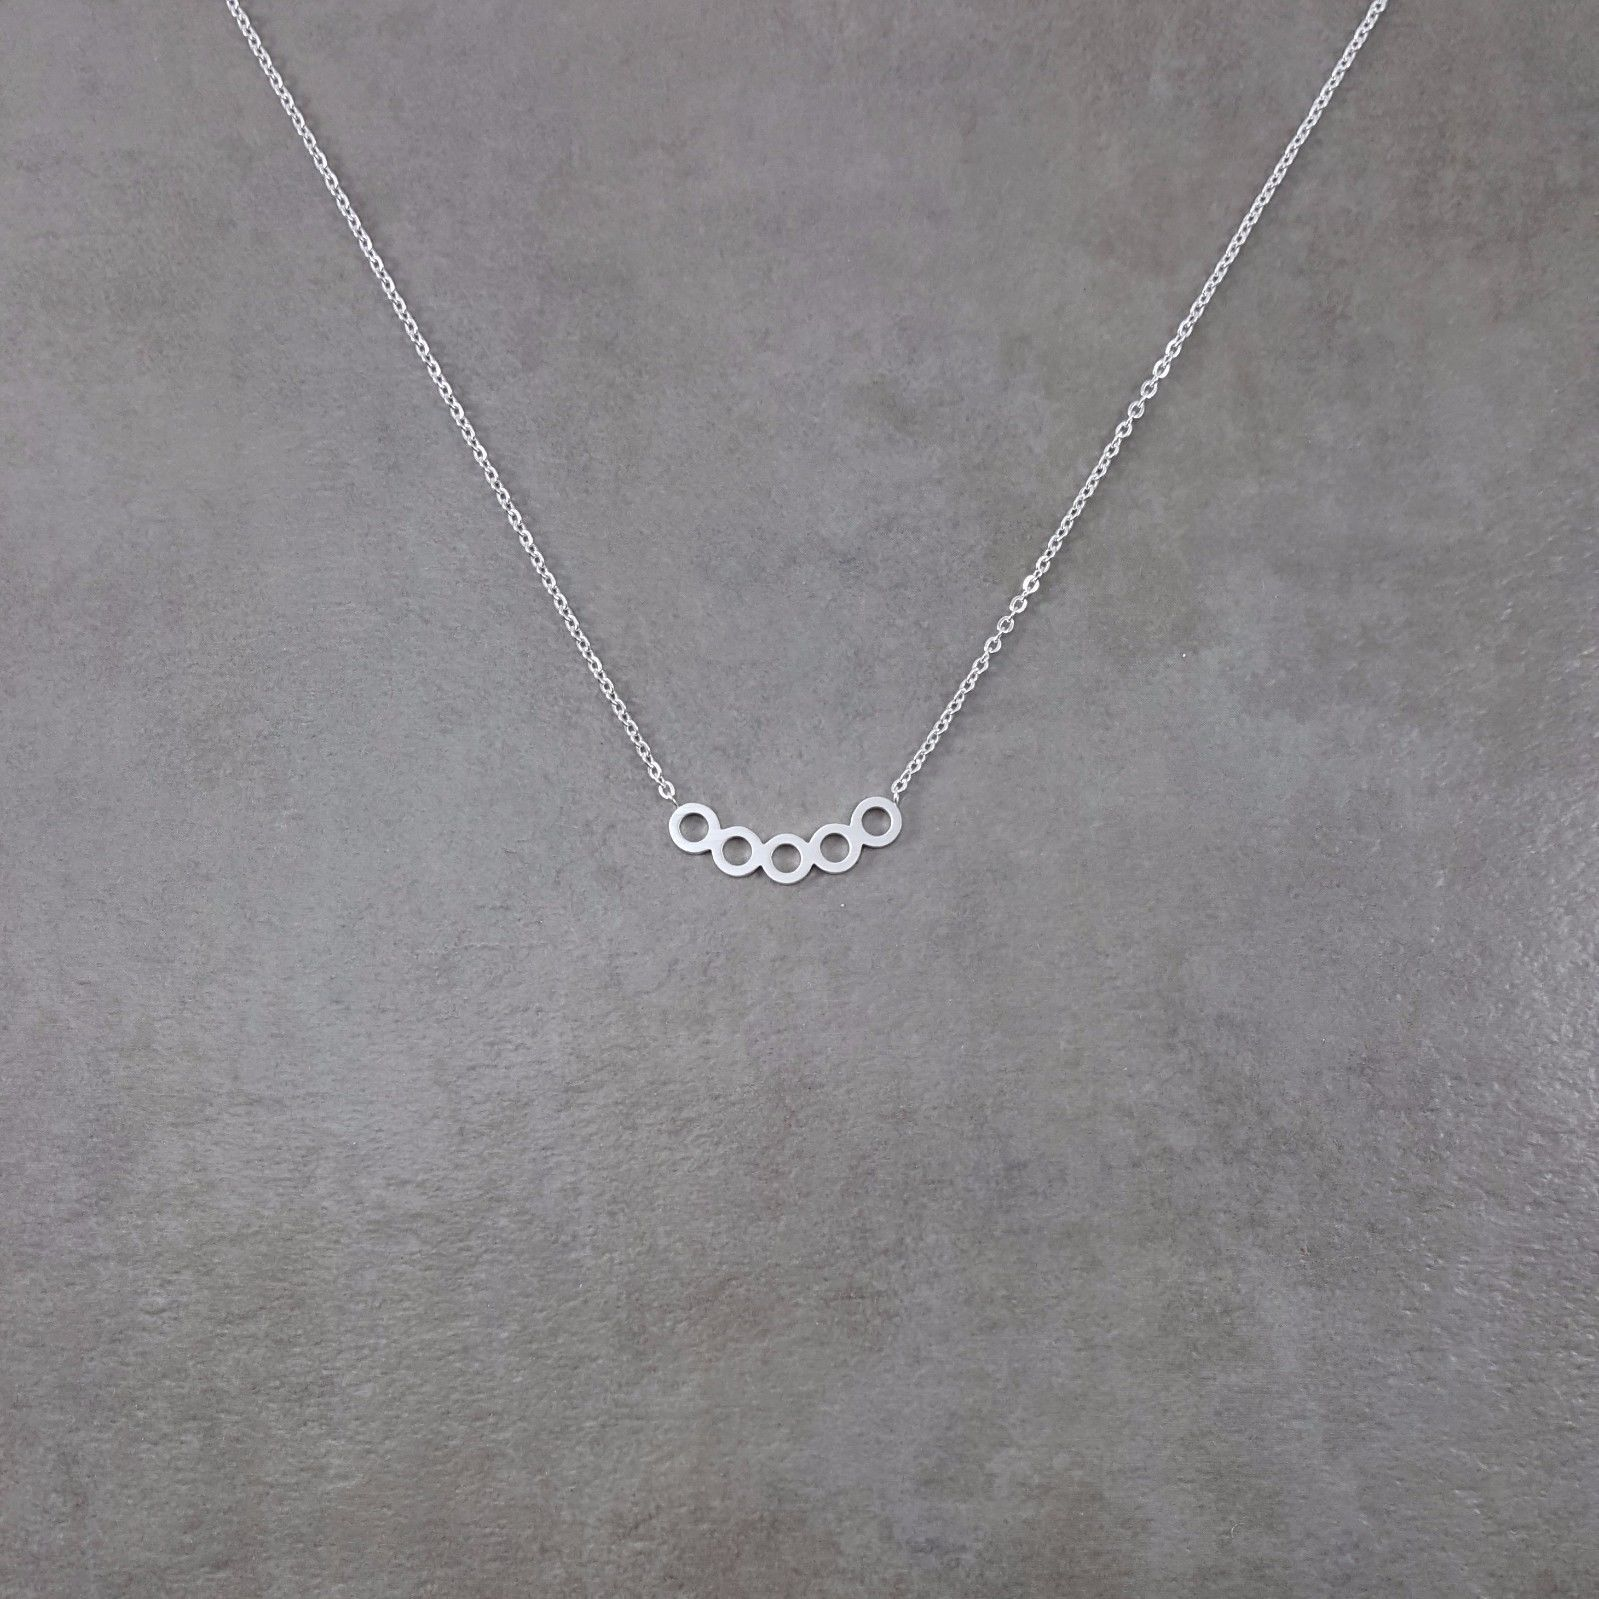 Five Circles in Line Silver Necklace Gift Box Karma Trendy Fashion Beautiful | eBay